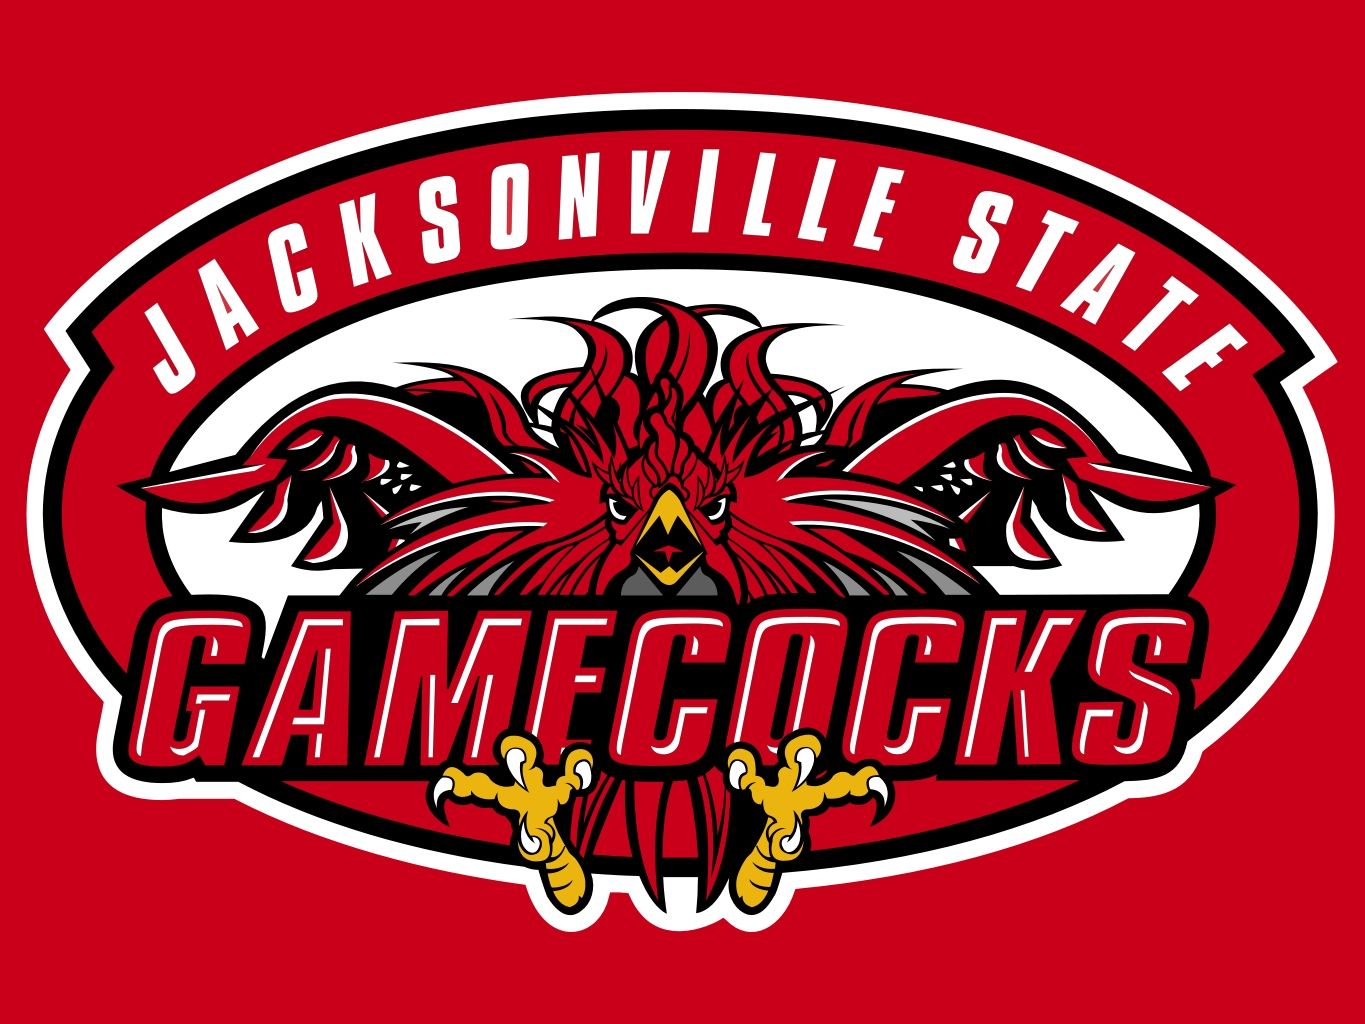 Image result for jacksonville state gamecocks logo red background